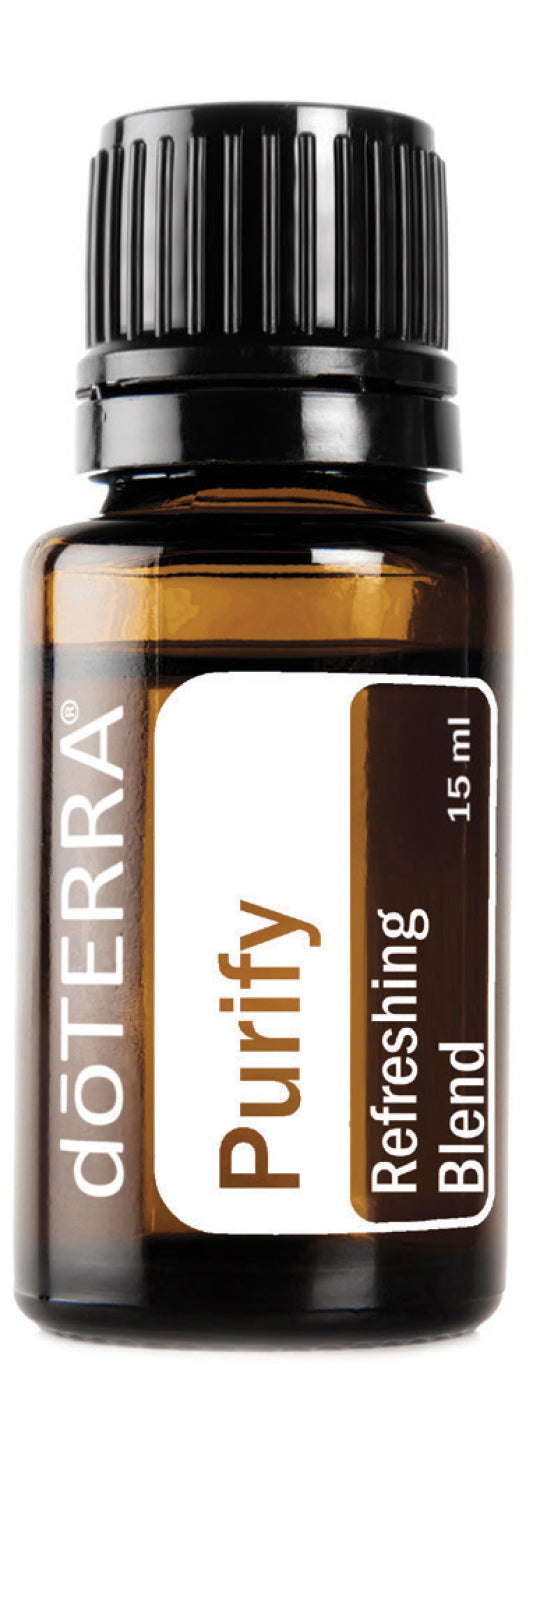 dōTERRA Purify Oil Blend 15ml - CUSTOM AND ESSENTIALS